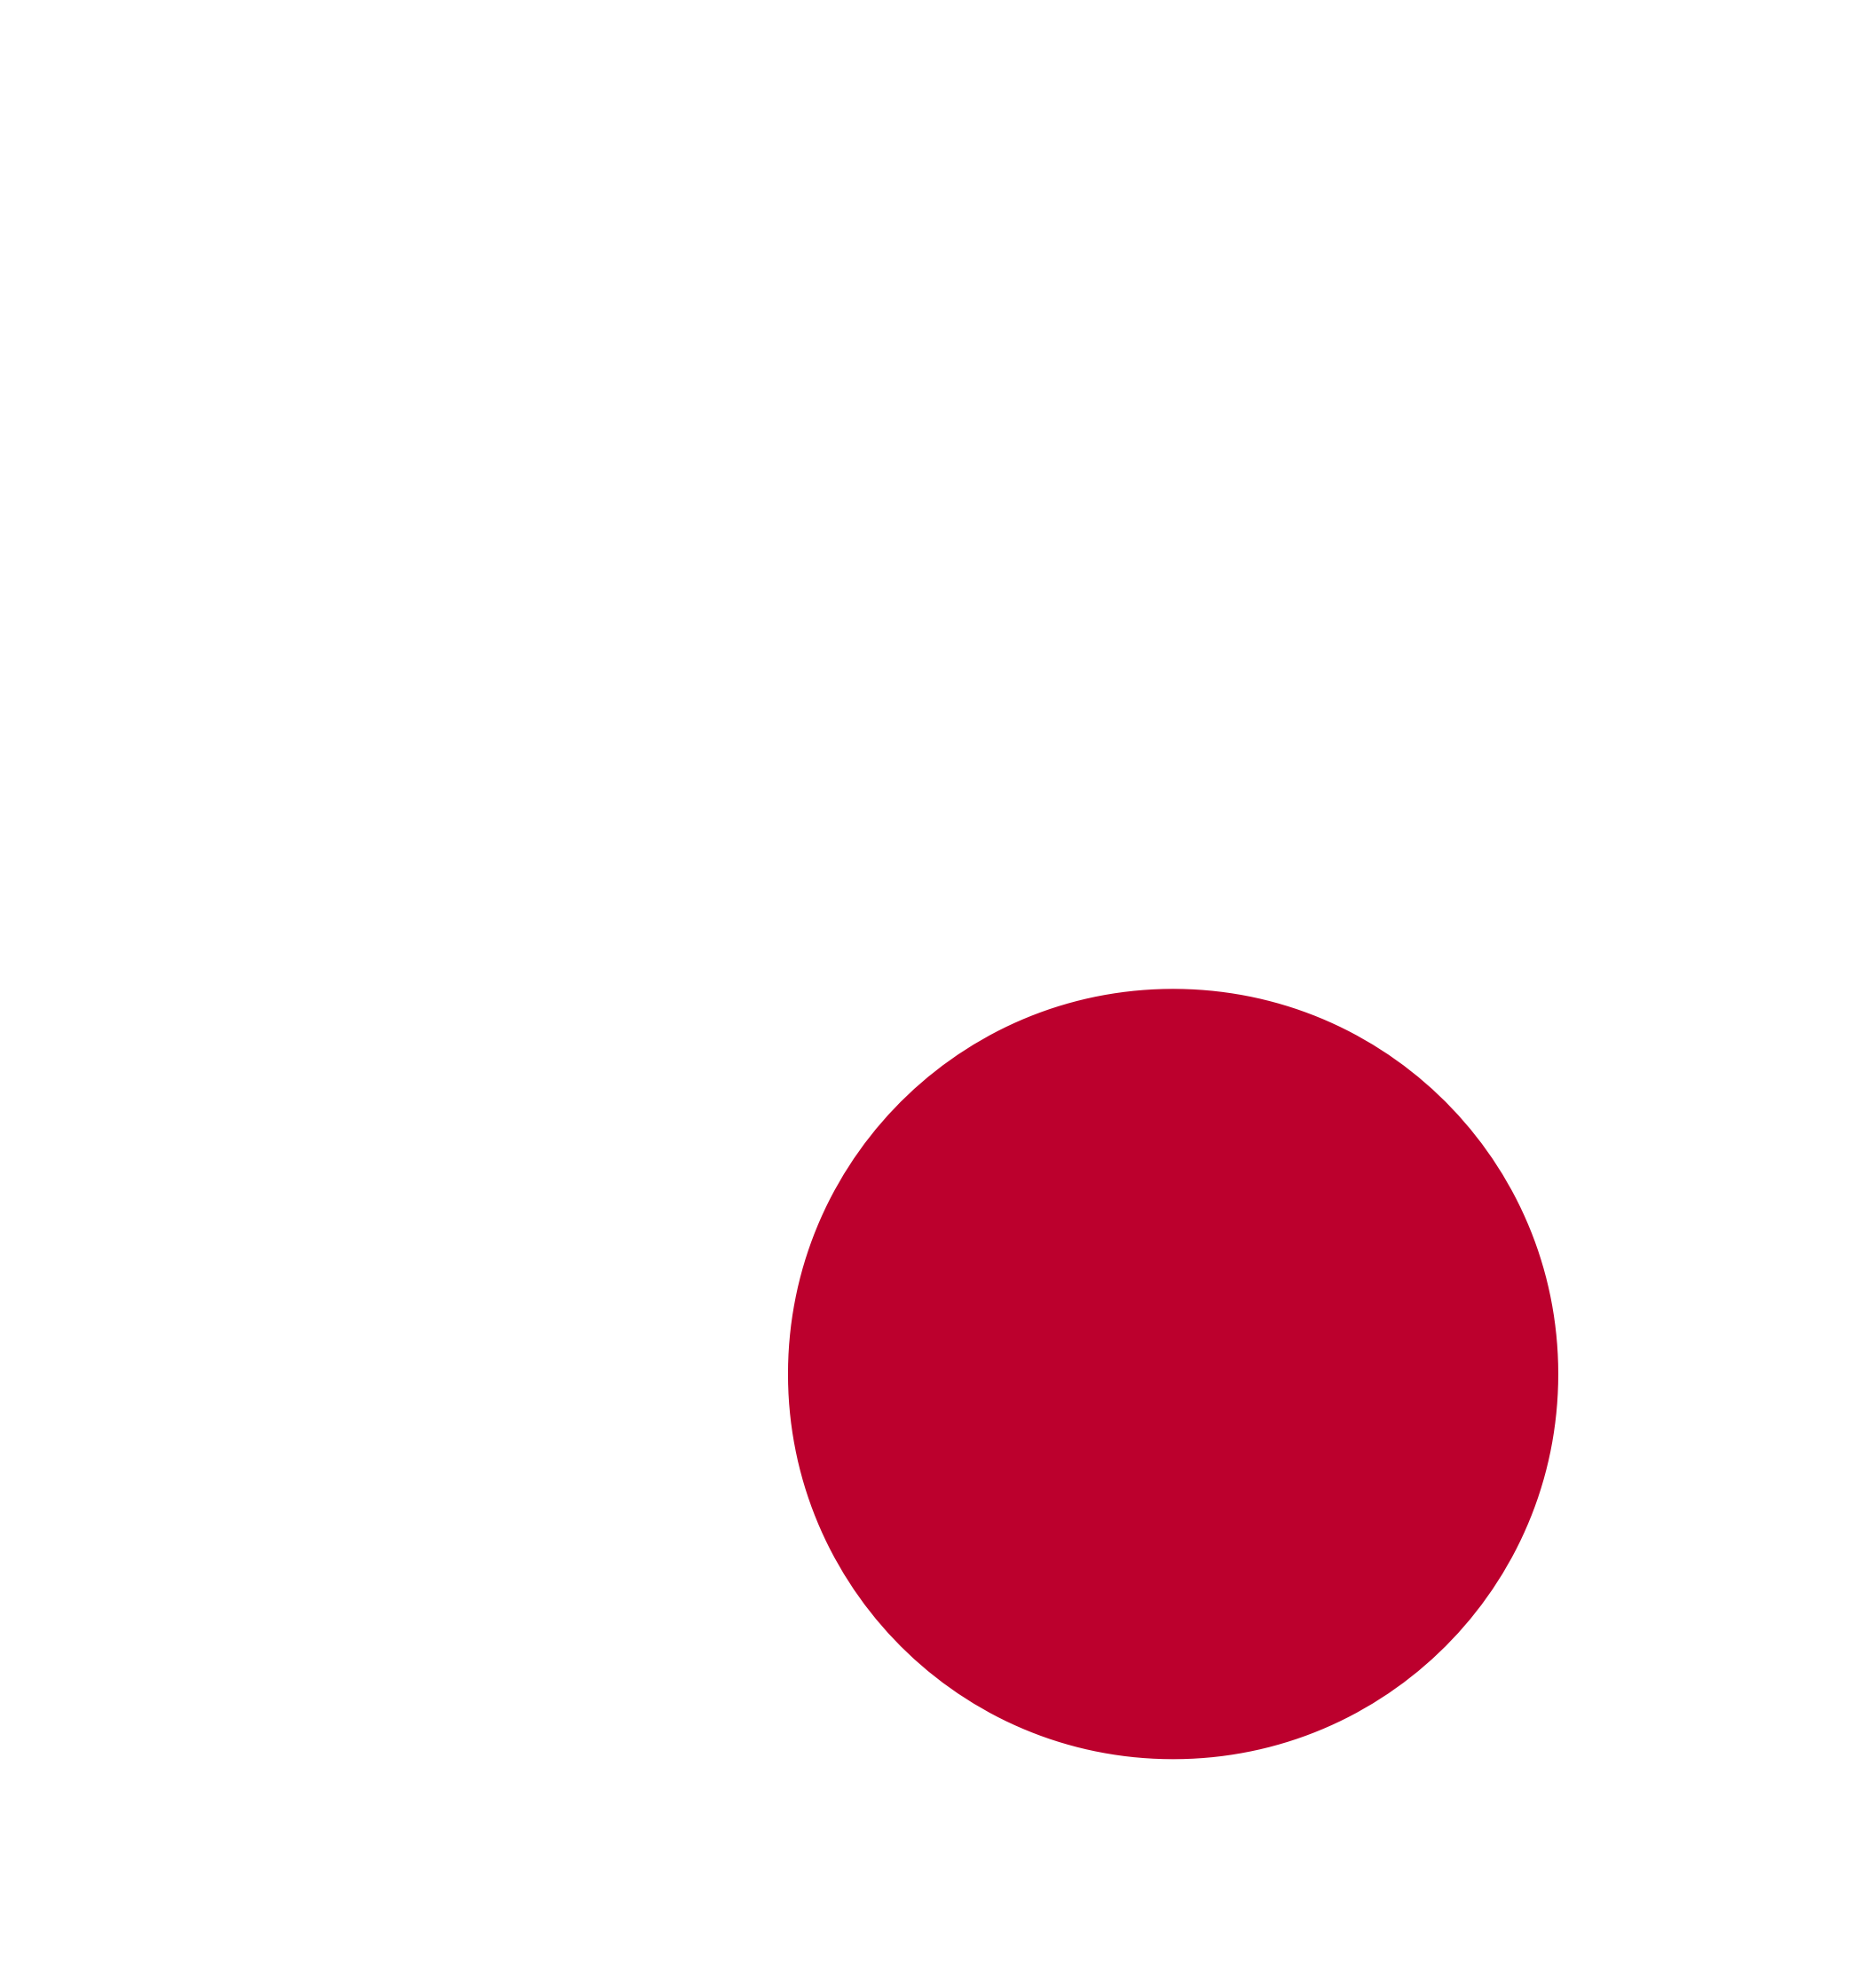 Thumbs Up Japan by GDJ